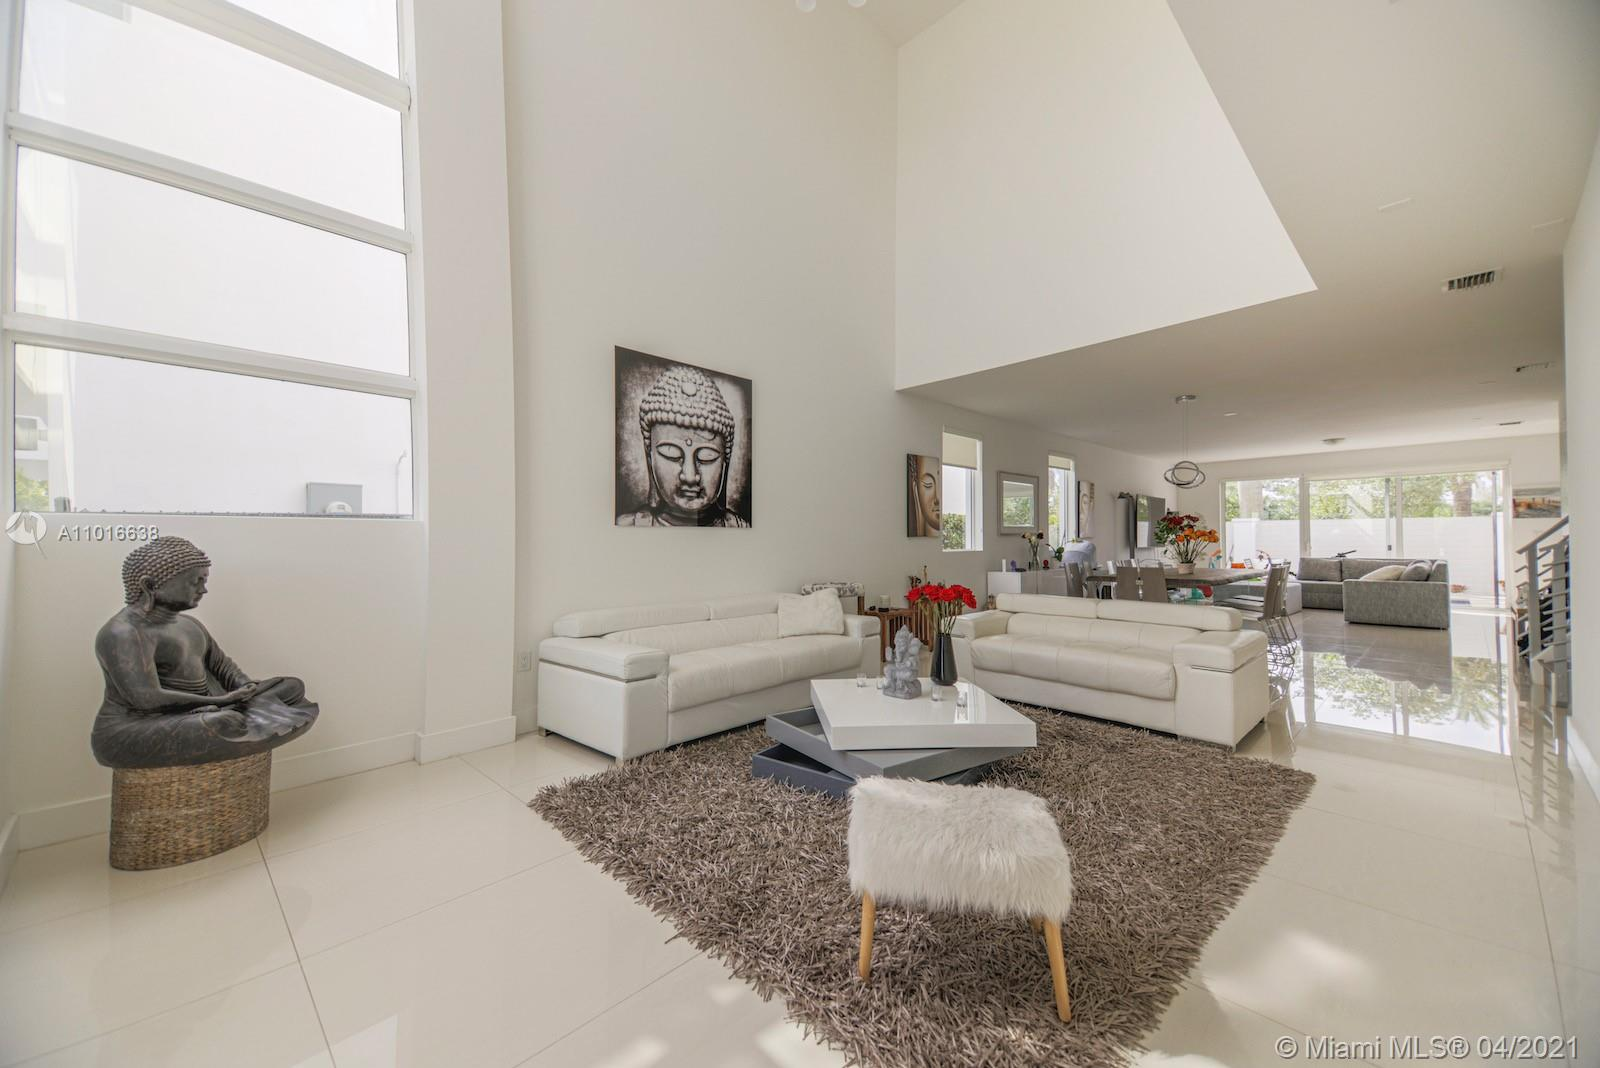 Doral Commons Residential - 9870 NW 74th Ter, Doral, FL 33178